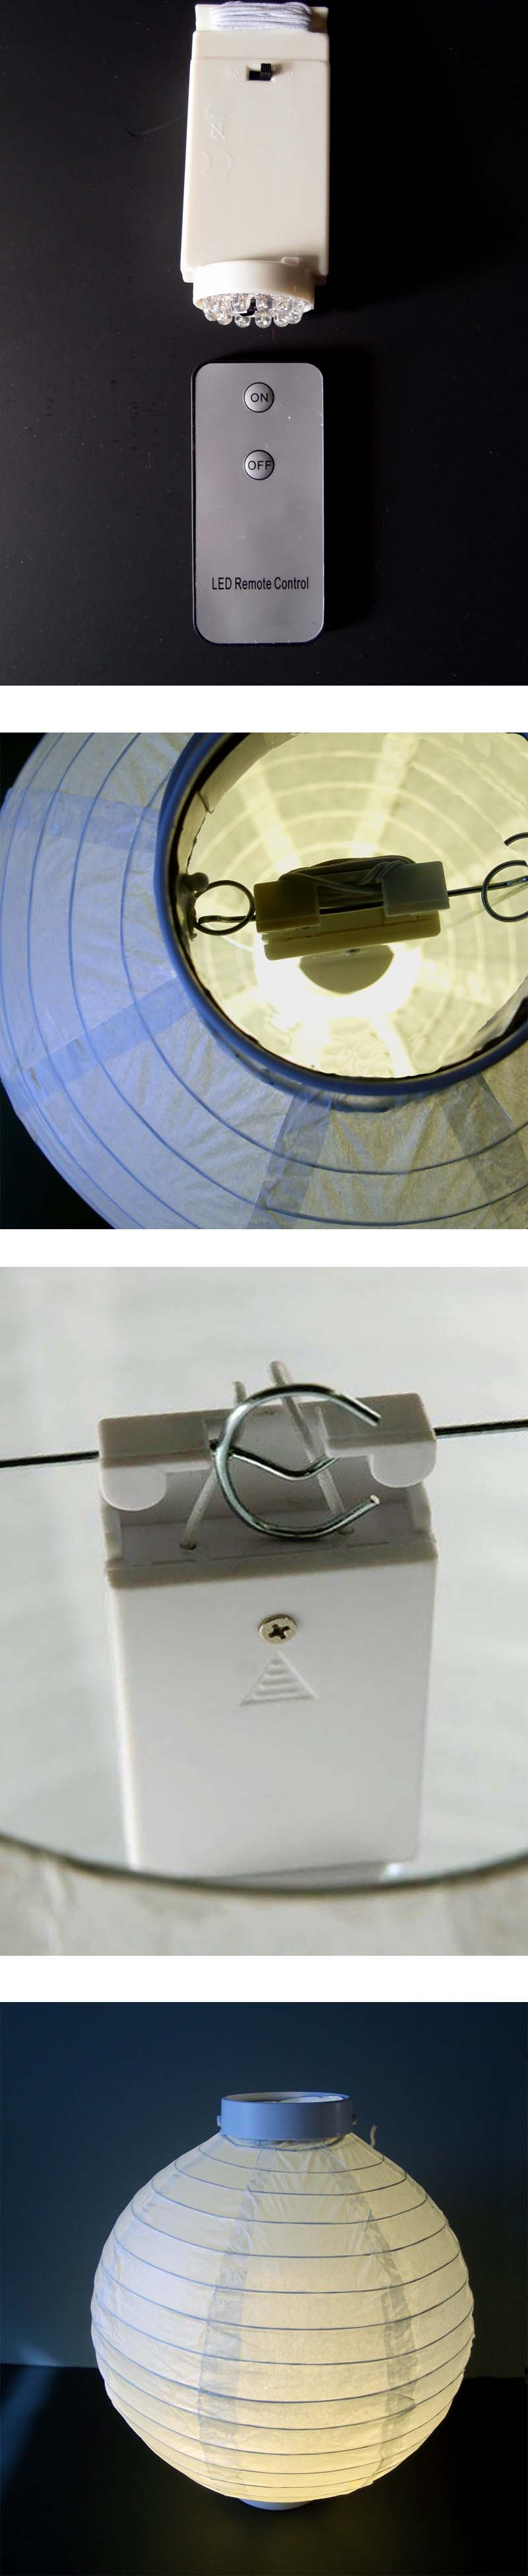 Battery Operated Paper Lantern Lights- Optional Remote